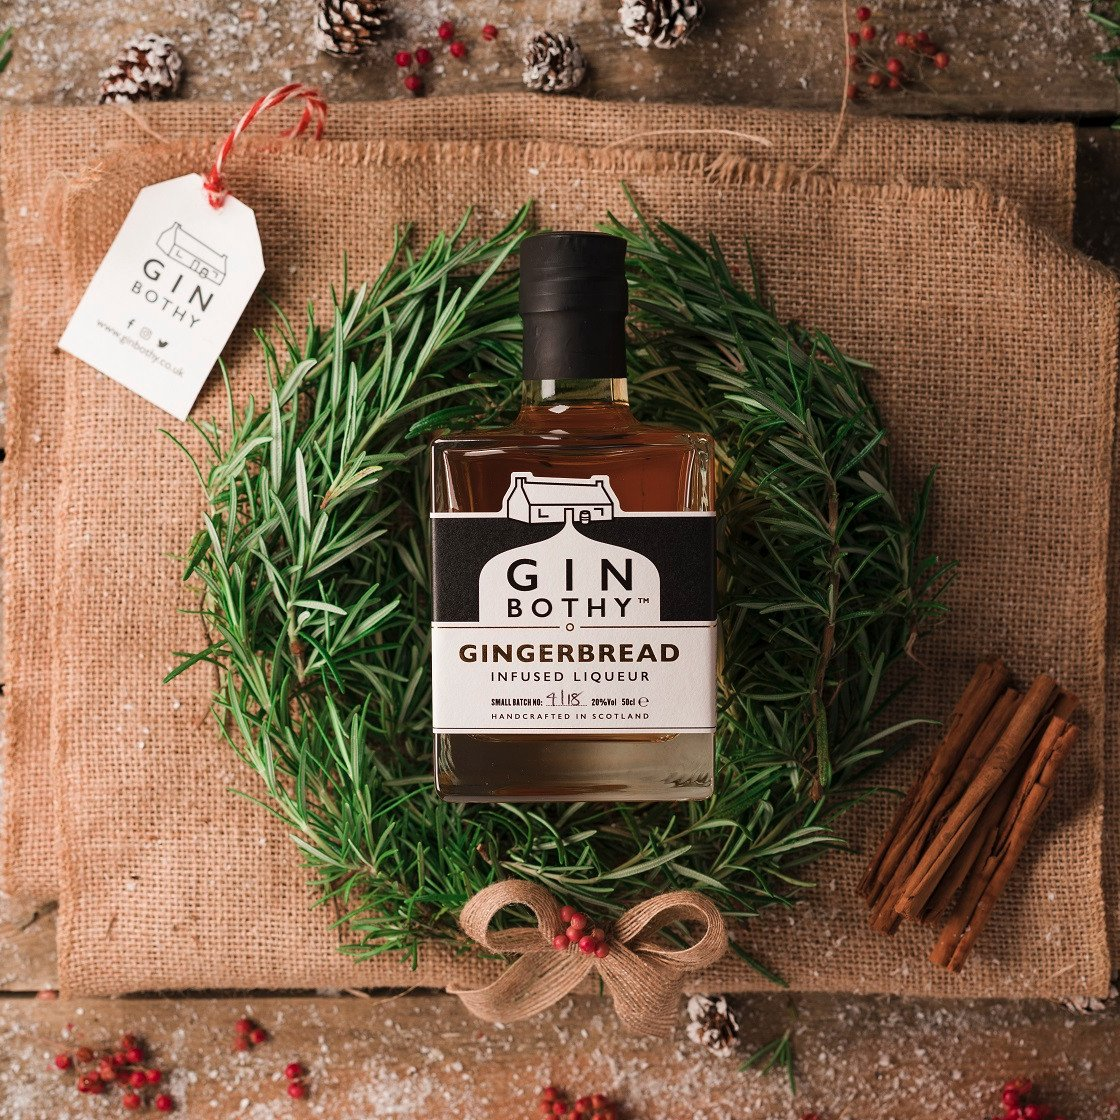 Gin Bothy - Gingerbread Infused Liqueur